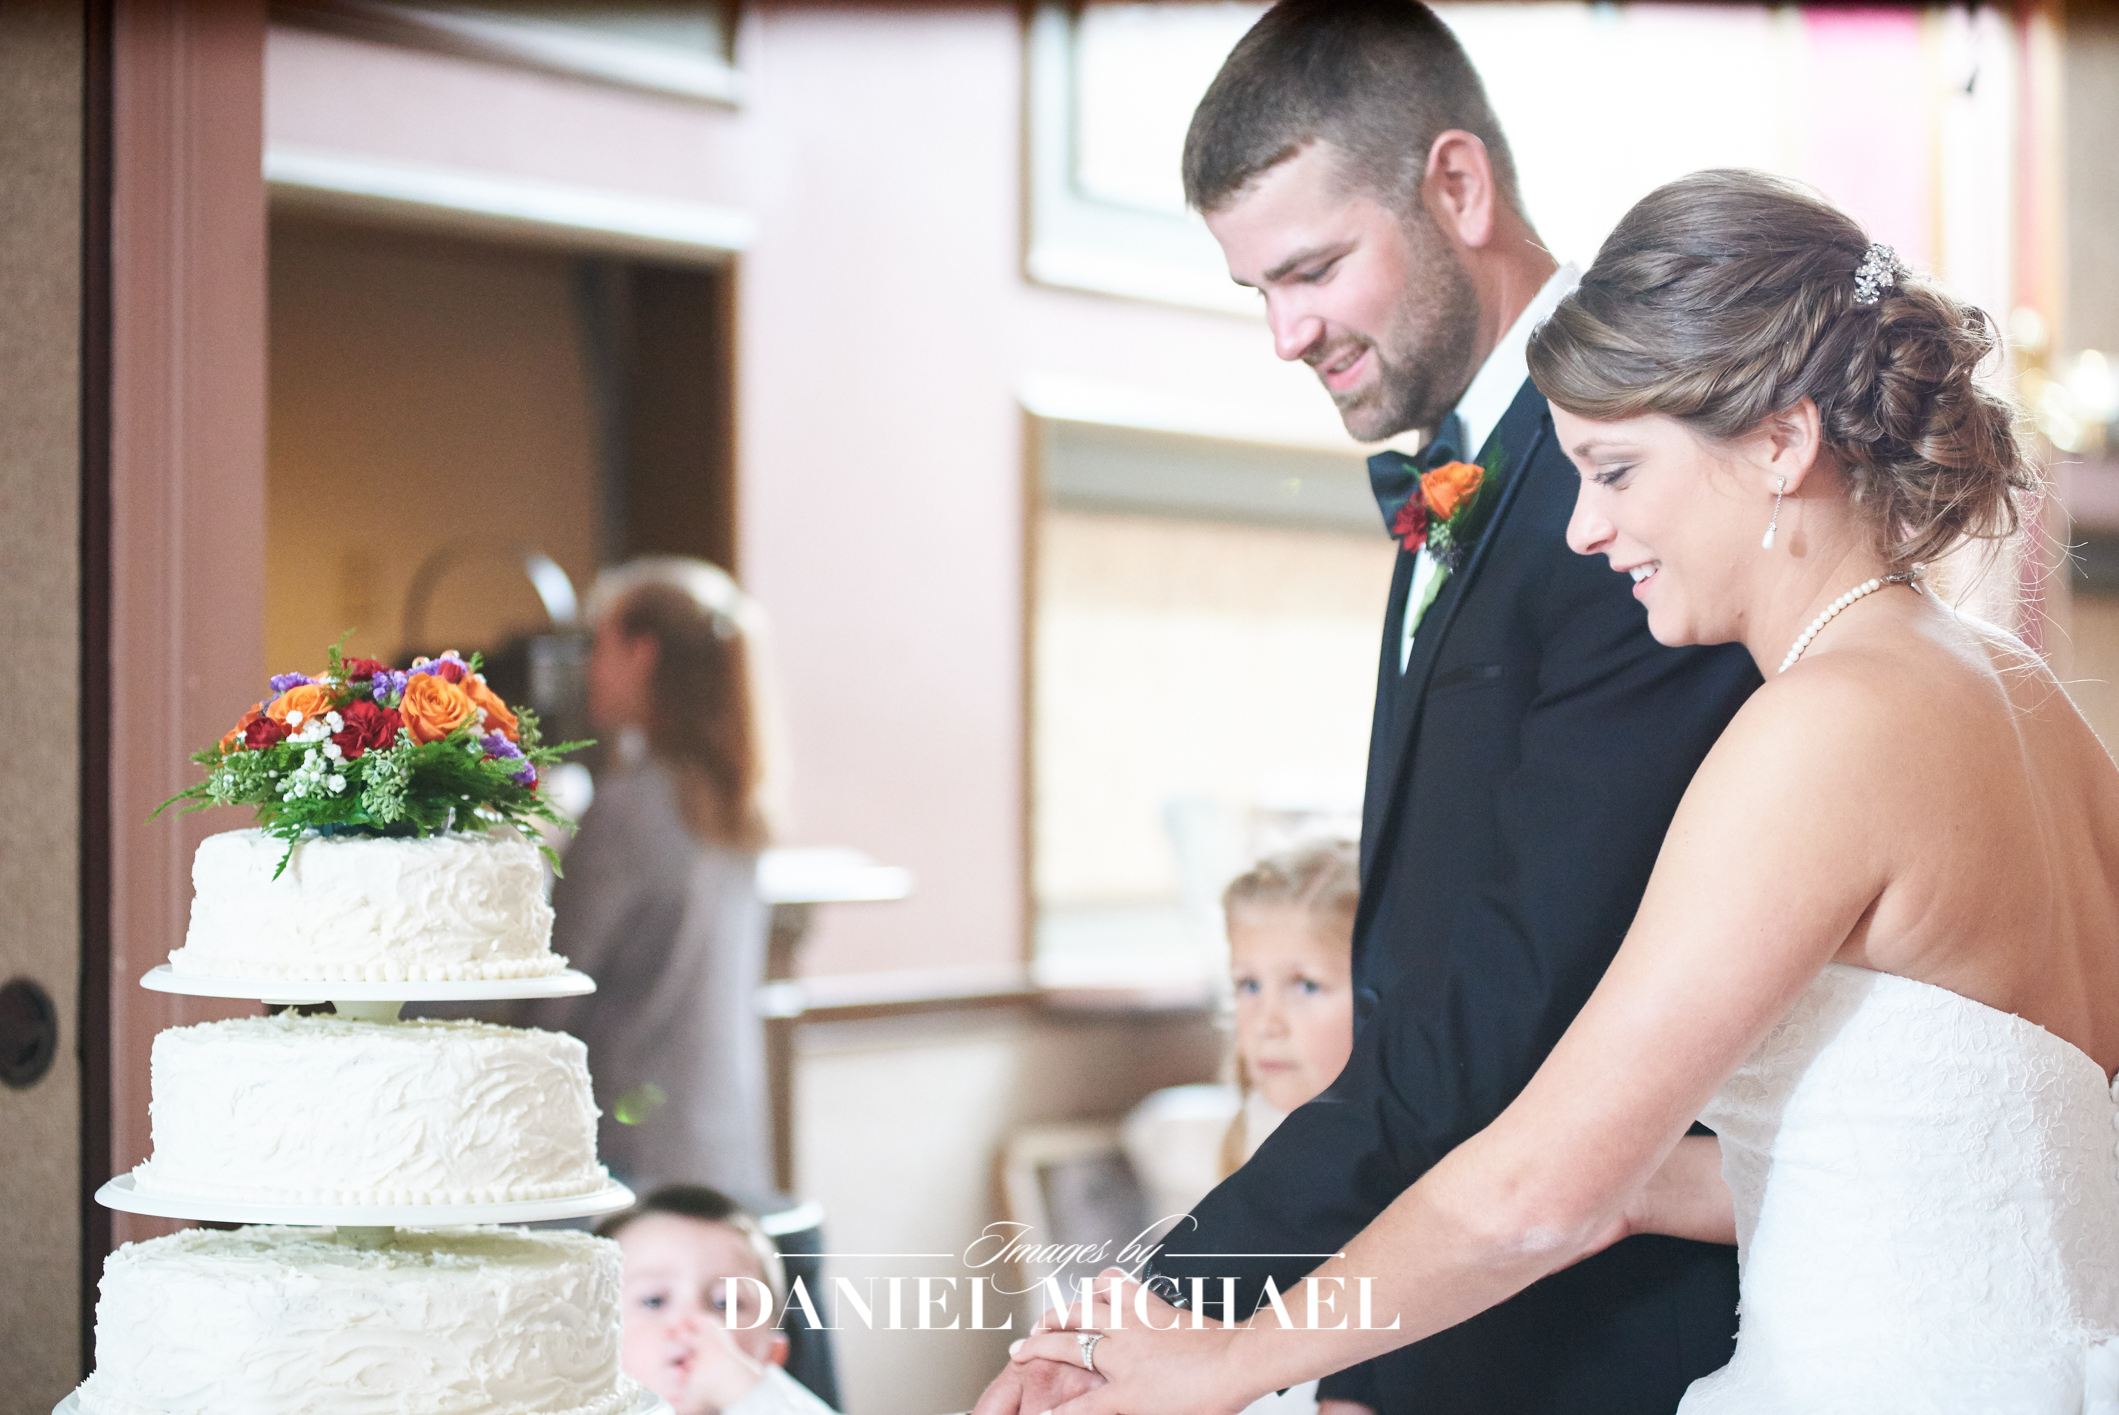 Kolping Center Venue Wedding Photographer